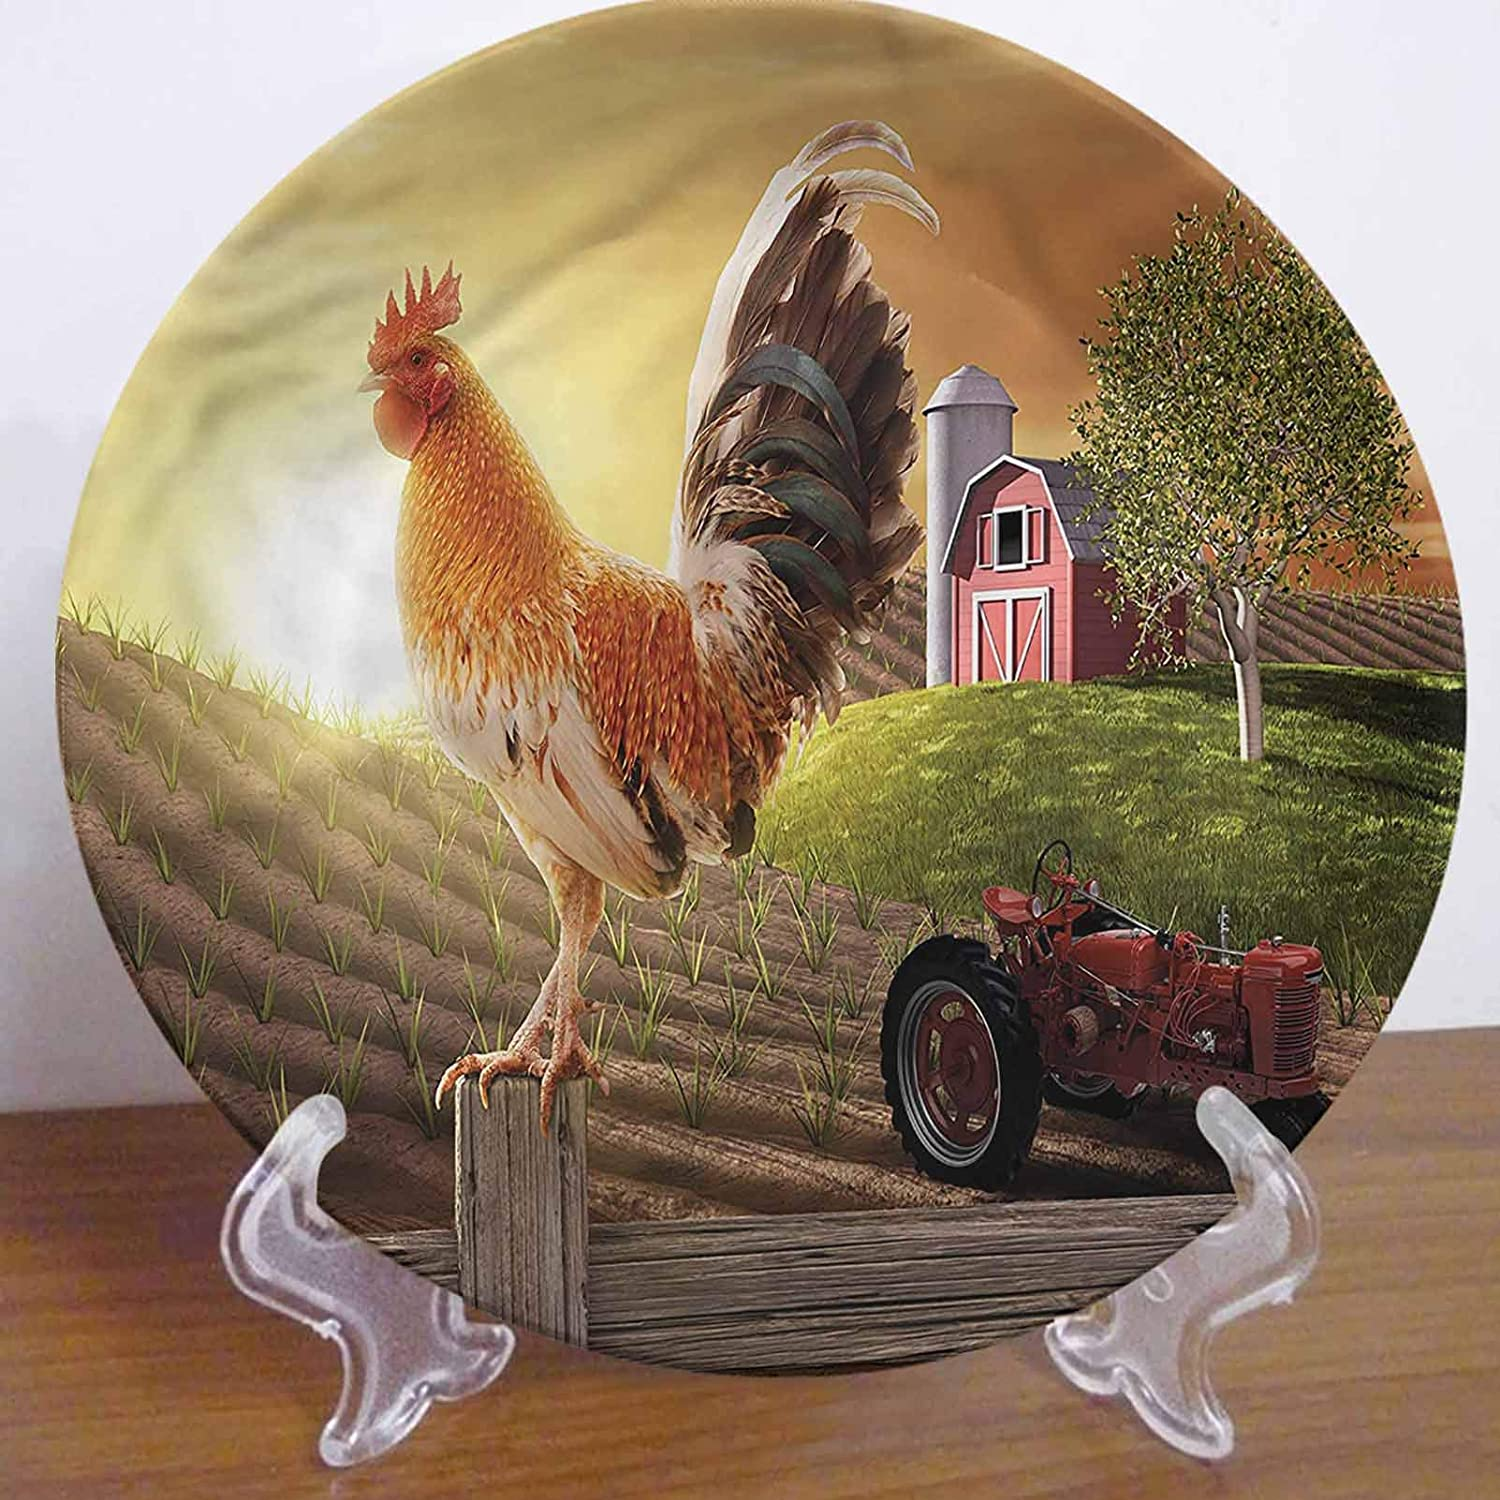 LCGGDB 8 Inch Country Pattern Decorative Ceramic Wall Plate,Rooster Early Morning Bird Dinner Plate Microwave & Dishwasher Safe for Home Decor